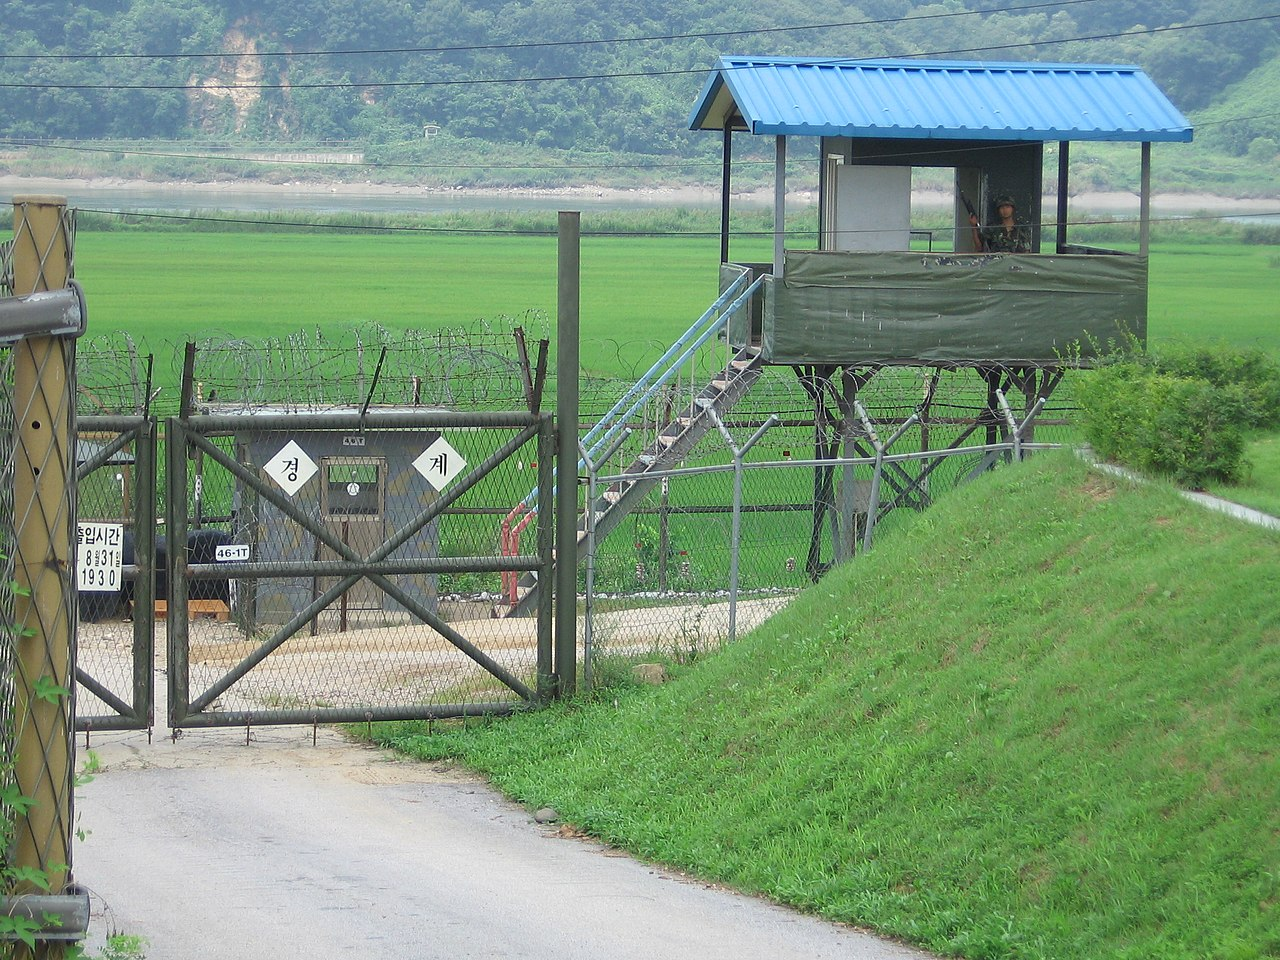 Korea DMZ sentry.jpg